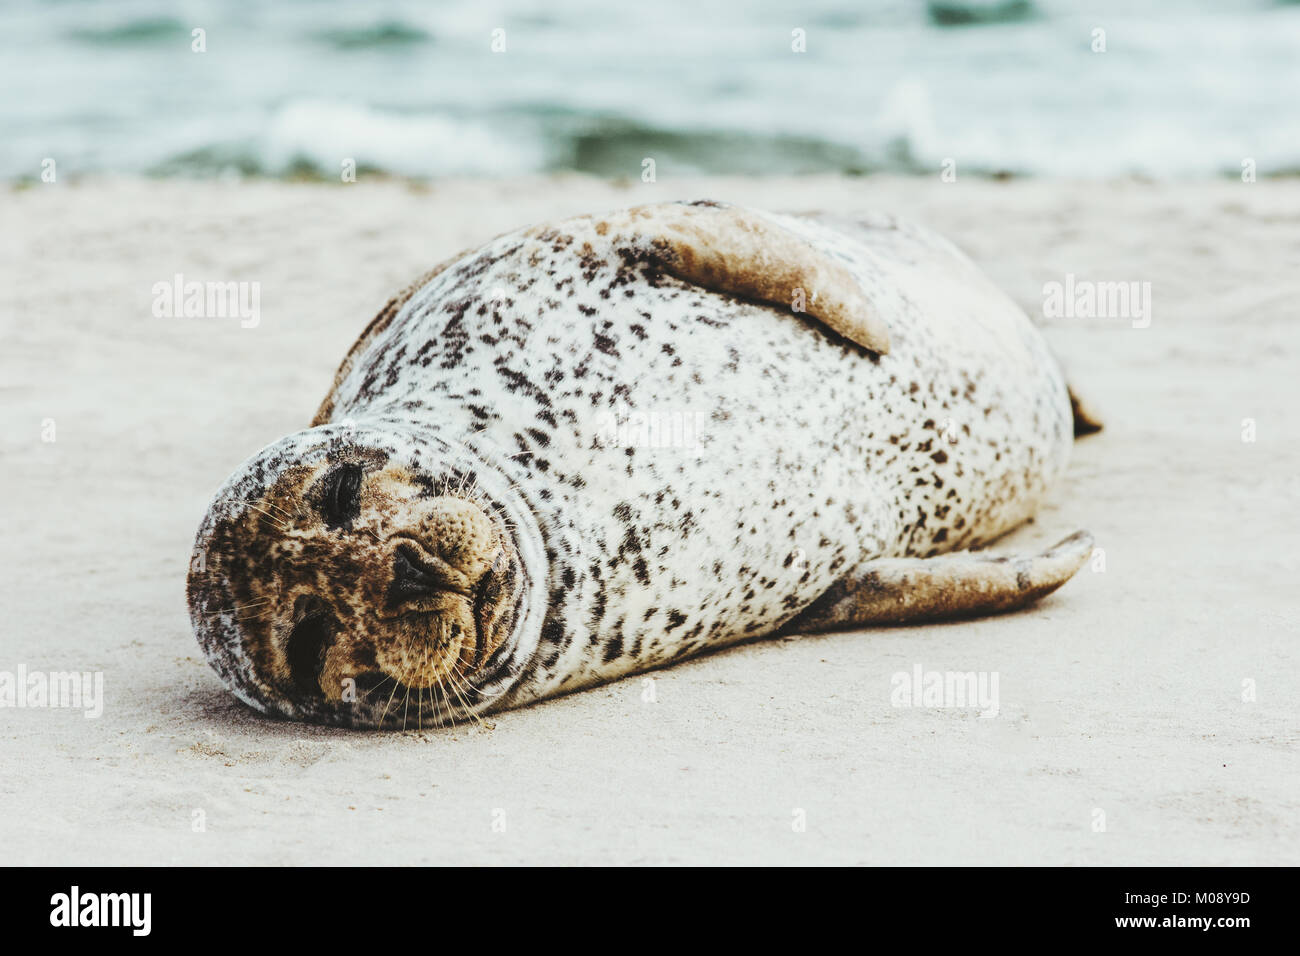 Harbor Seal funny animal sleeping on sandy beach in Denmark phoca vitulina ecology protection concept arctic sealife - Stock Image